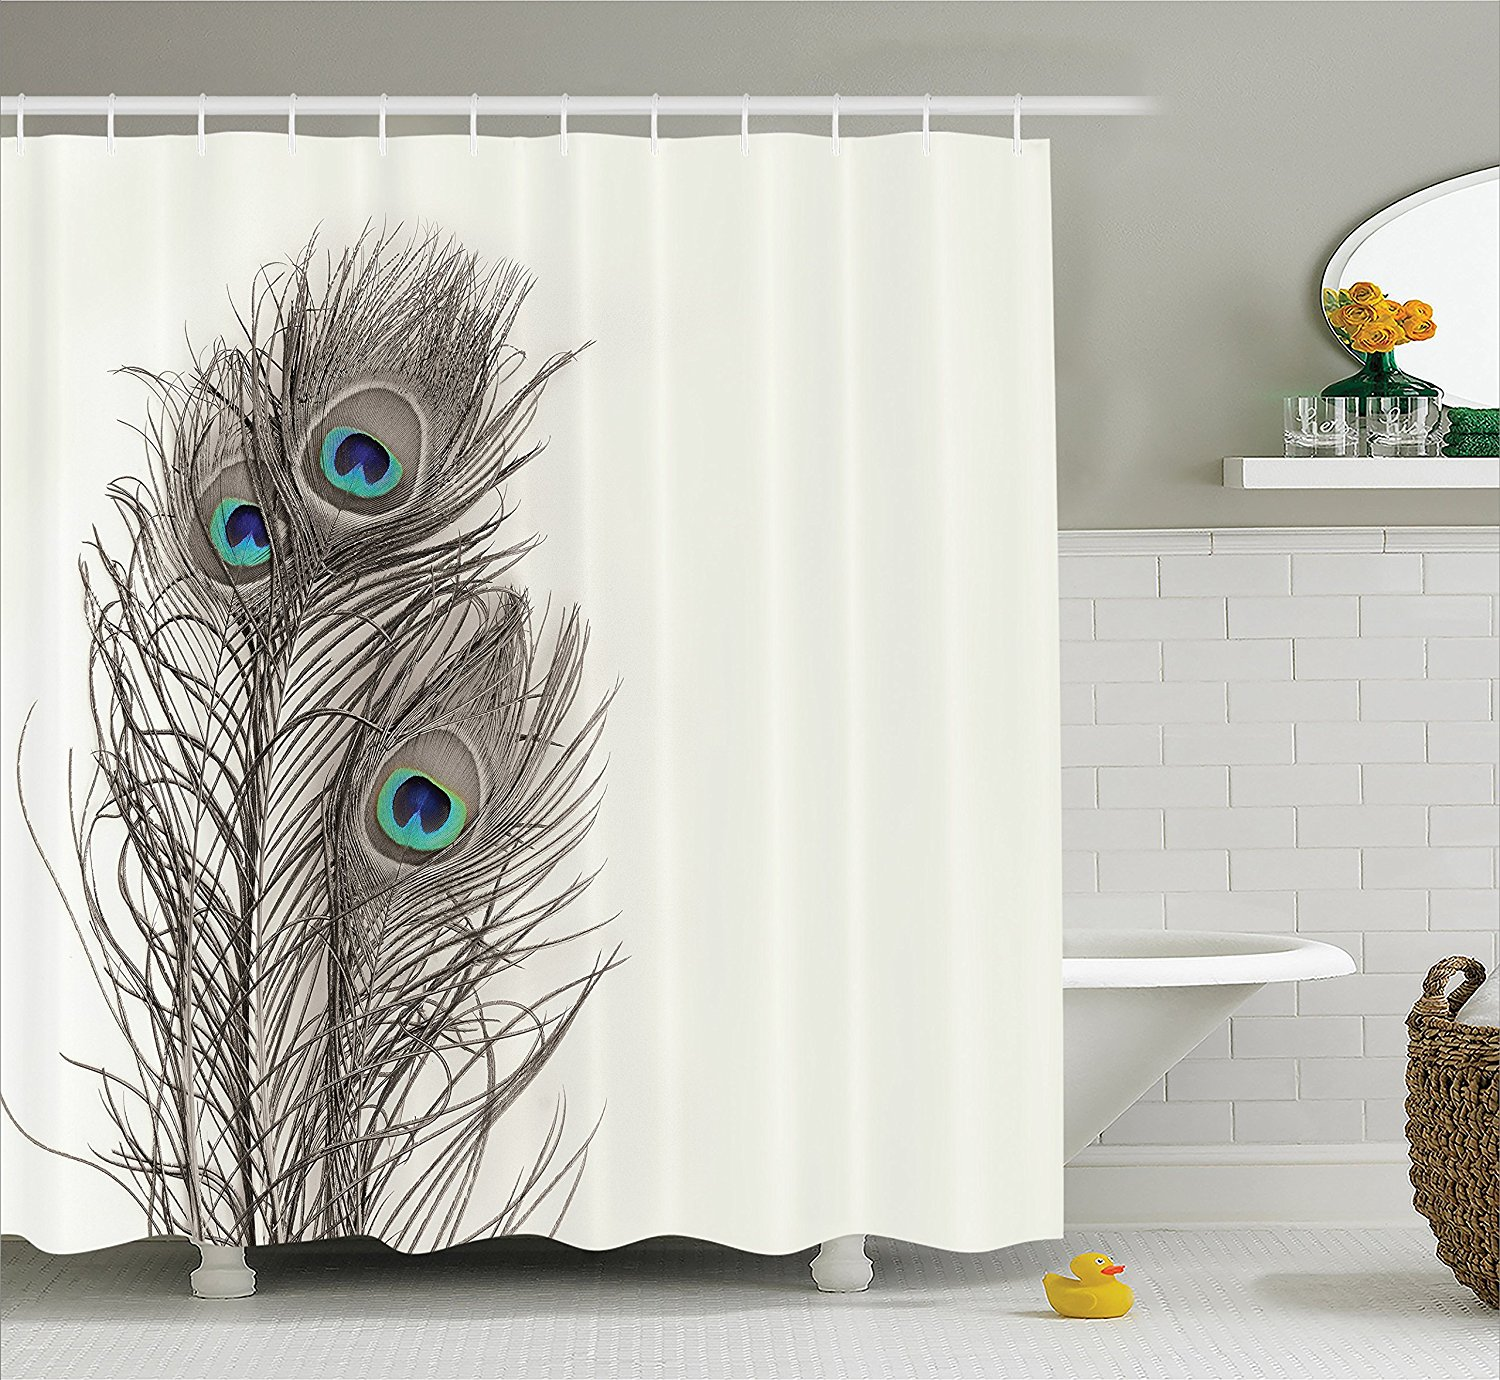 Peacock feather fabric shower curtain quot teal peacock feather quot green - Warm Tour Natural Peacock Tail Feathers With Eyes Home Designers Fabric Shower Curtain White Gray Turquoise